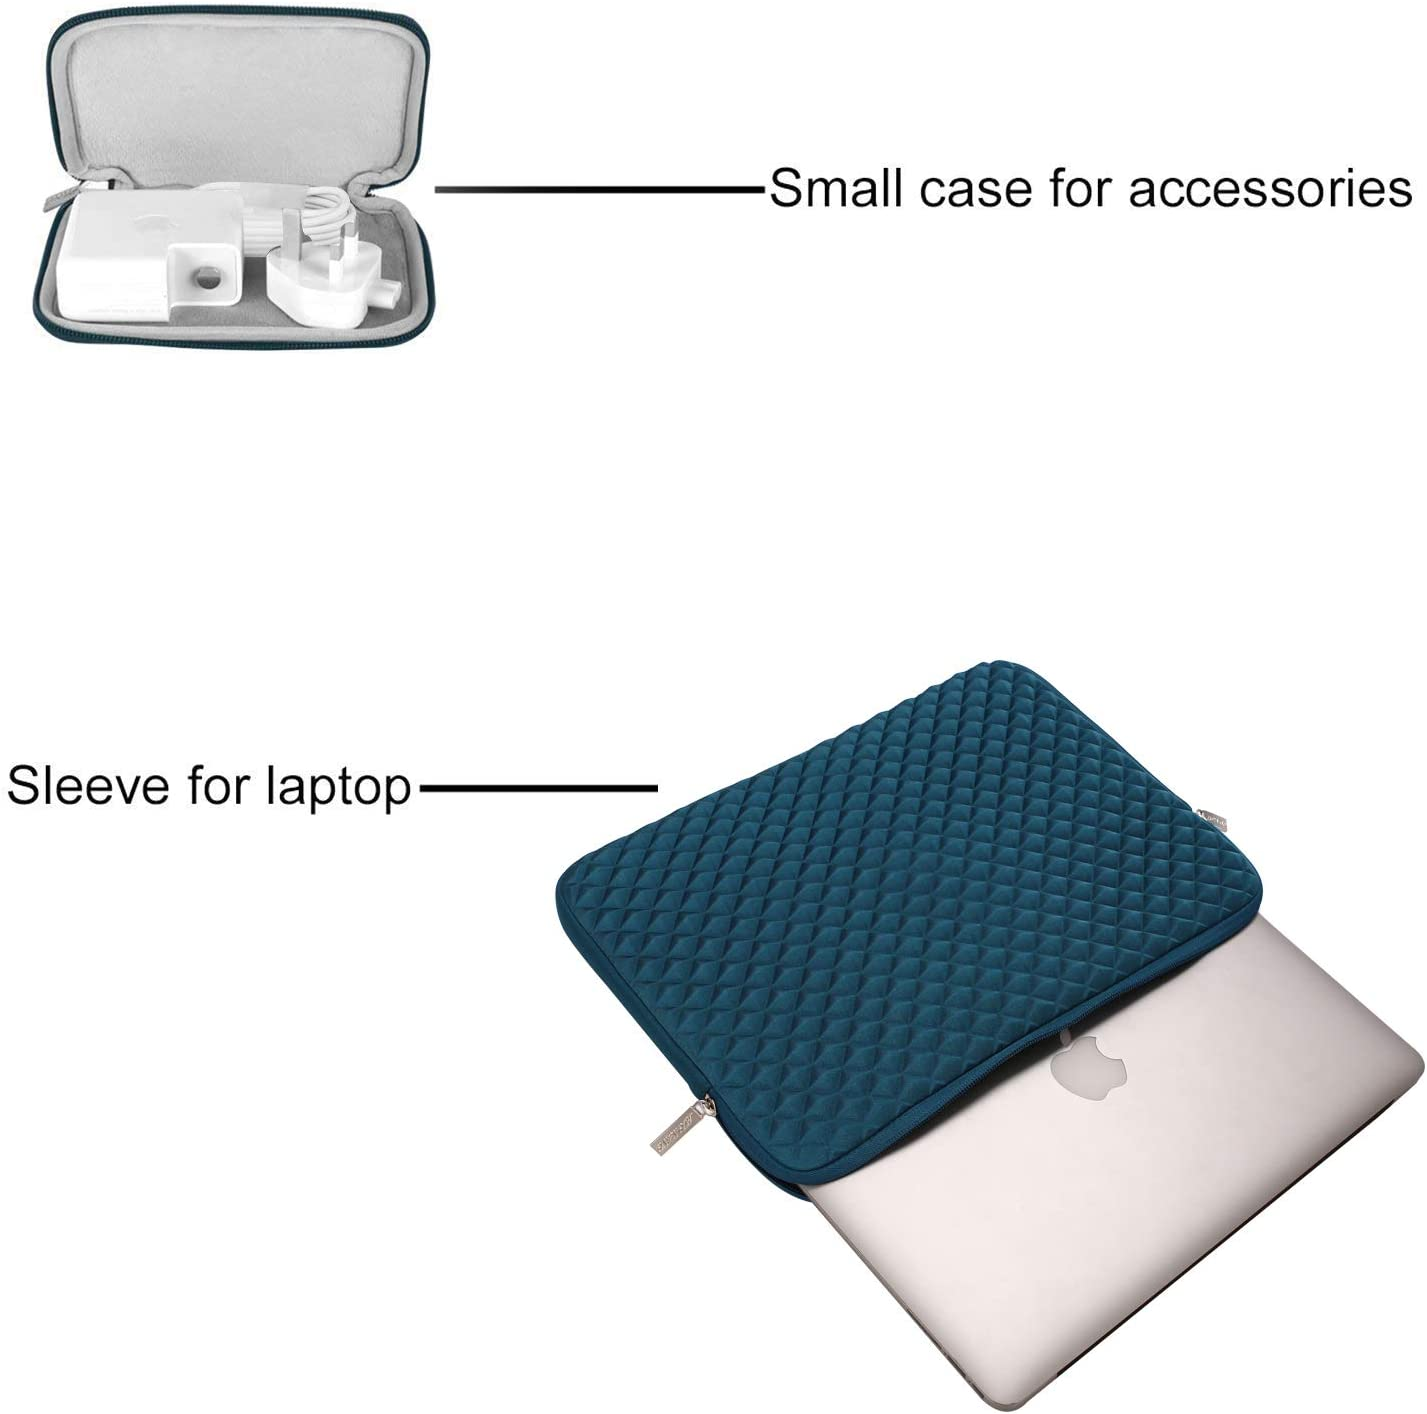 MOSISO Laptop Sleeve Compatible with 2019 2018 MacBook Air 13 inch Retina Display A1932 13 inch MacBook Pro A2159 A1989 A1706 A1708 Diamond Foam Neoprene Bag Cover with Small Case Wine Red